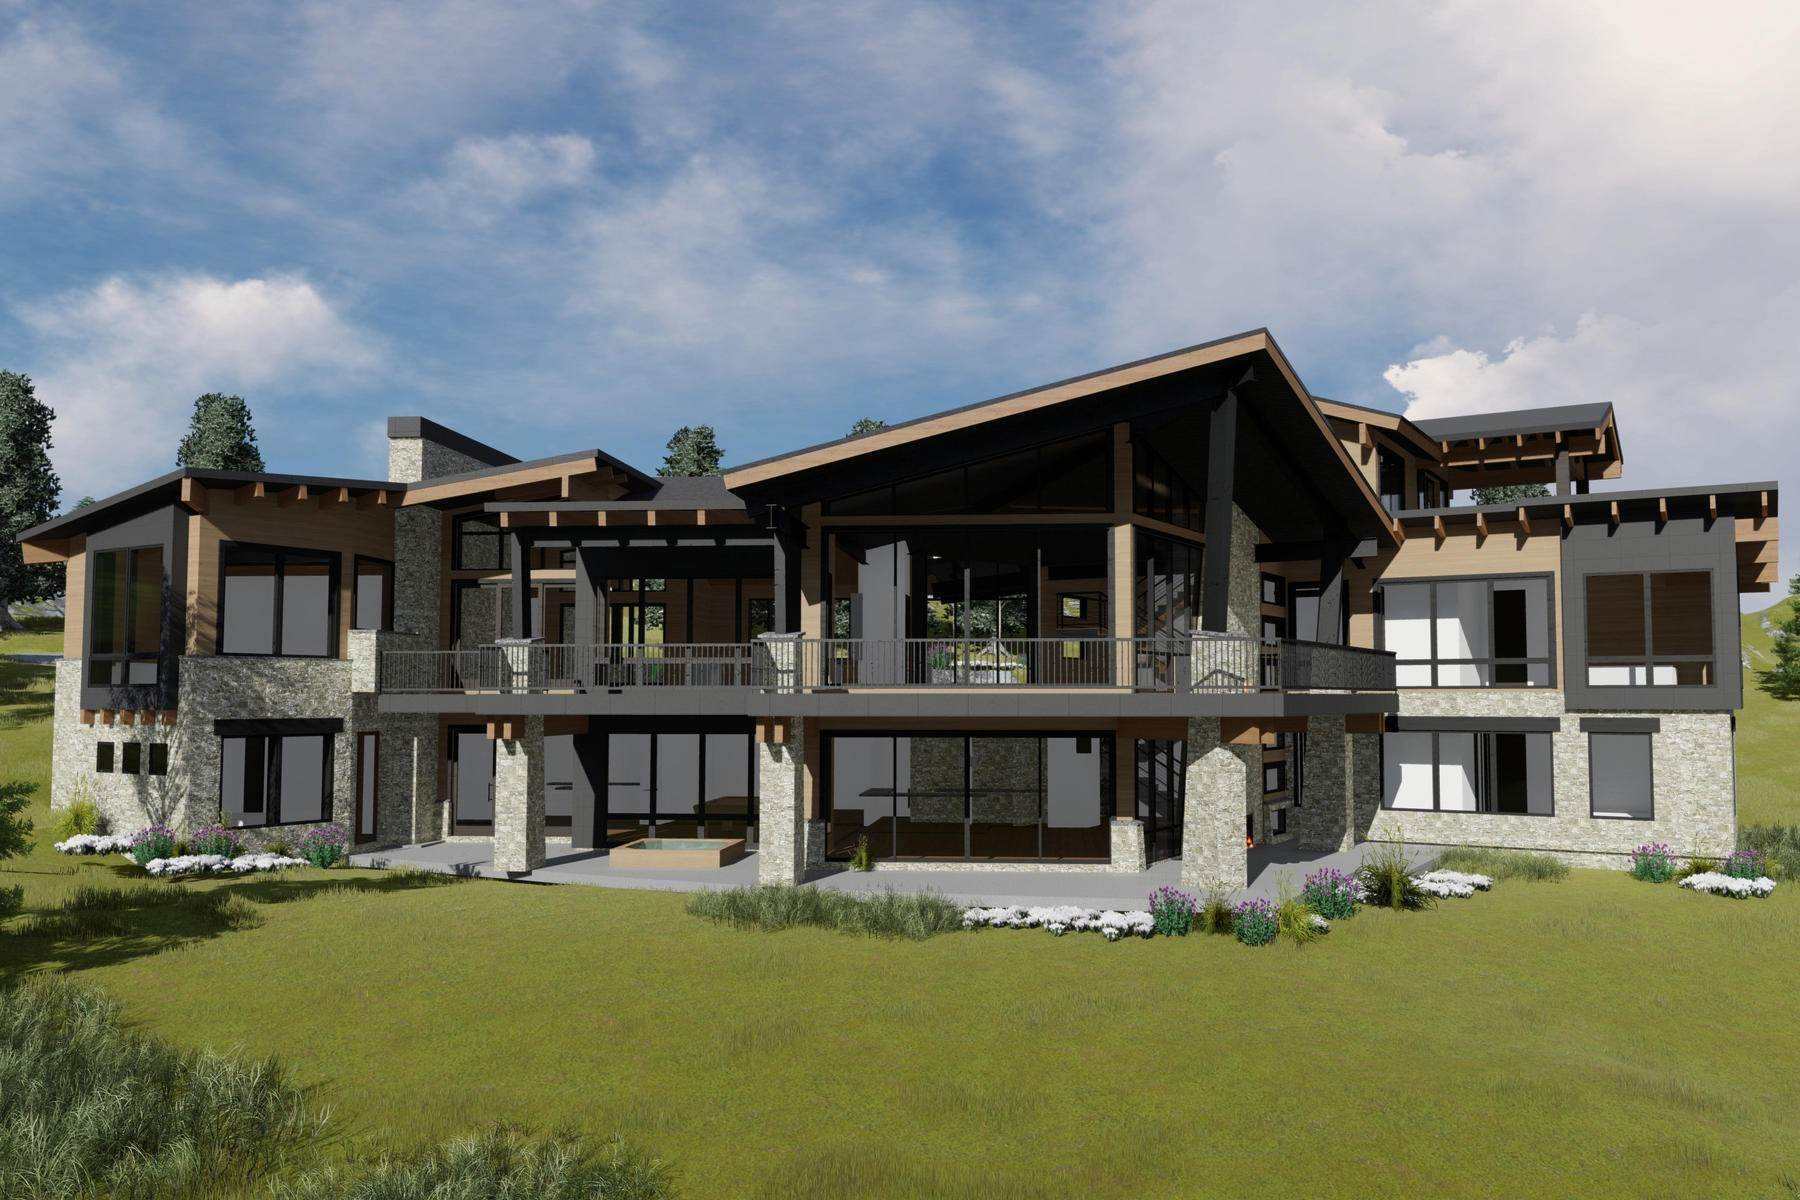 Single Family Homes for Sale at Spectacular Ski-In/Ski-Out Contemporary Home with Unobstructed Views 28 Red Cloud Trail Park City, Utah 84060 United States